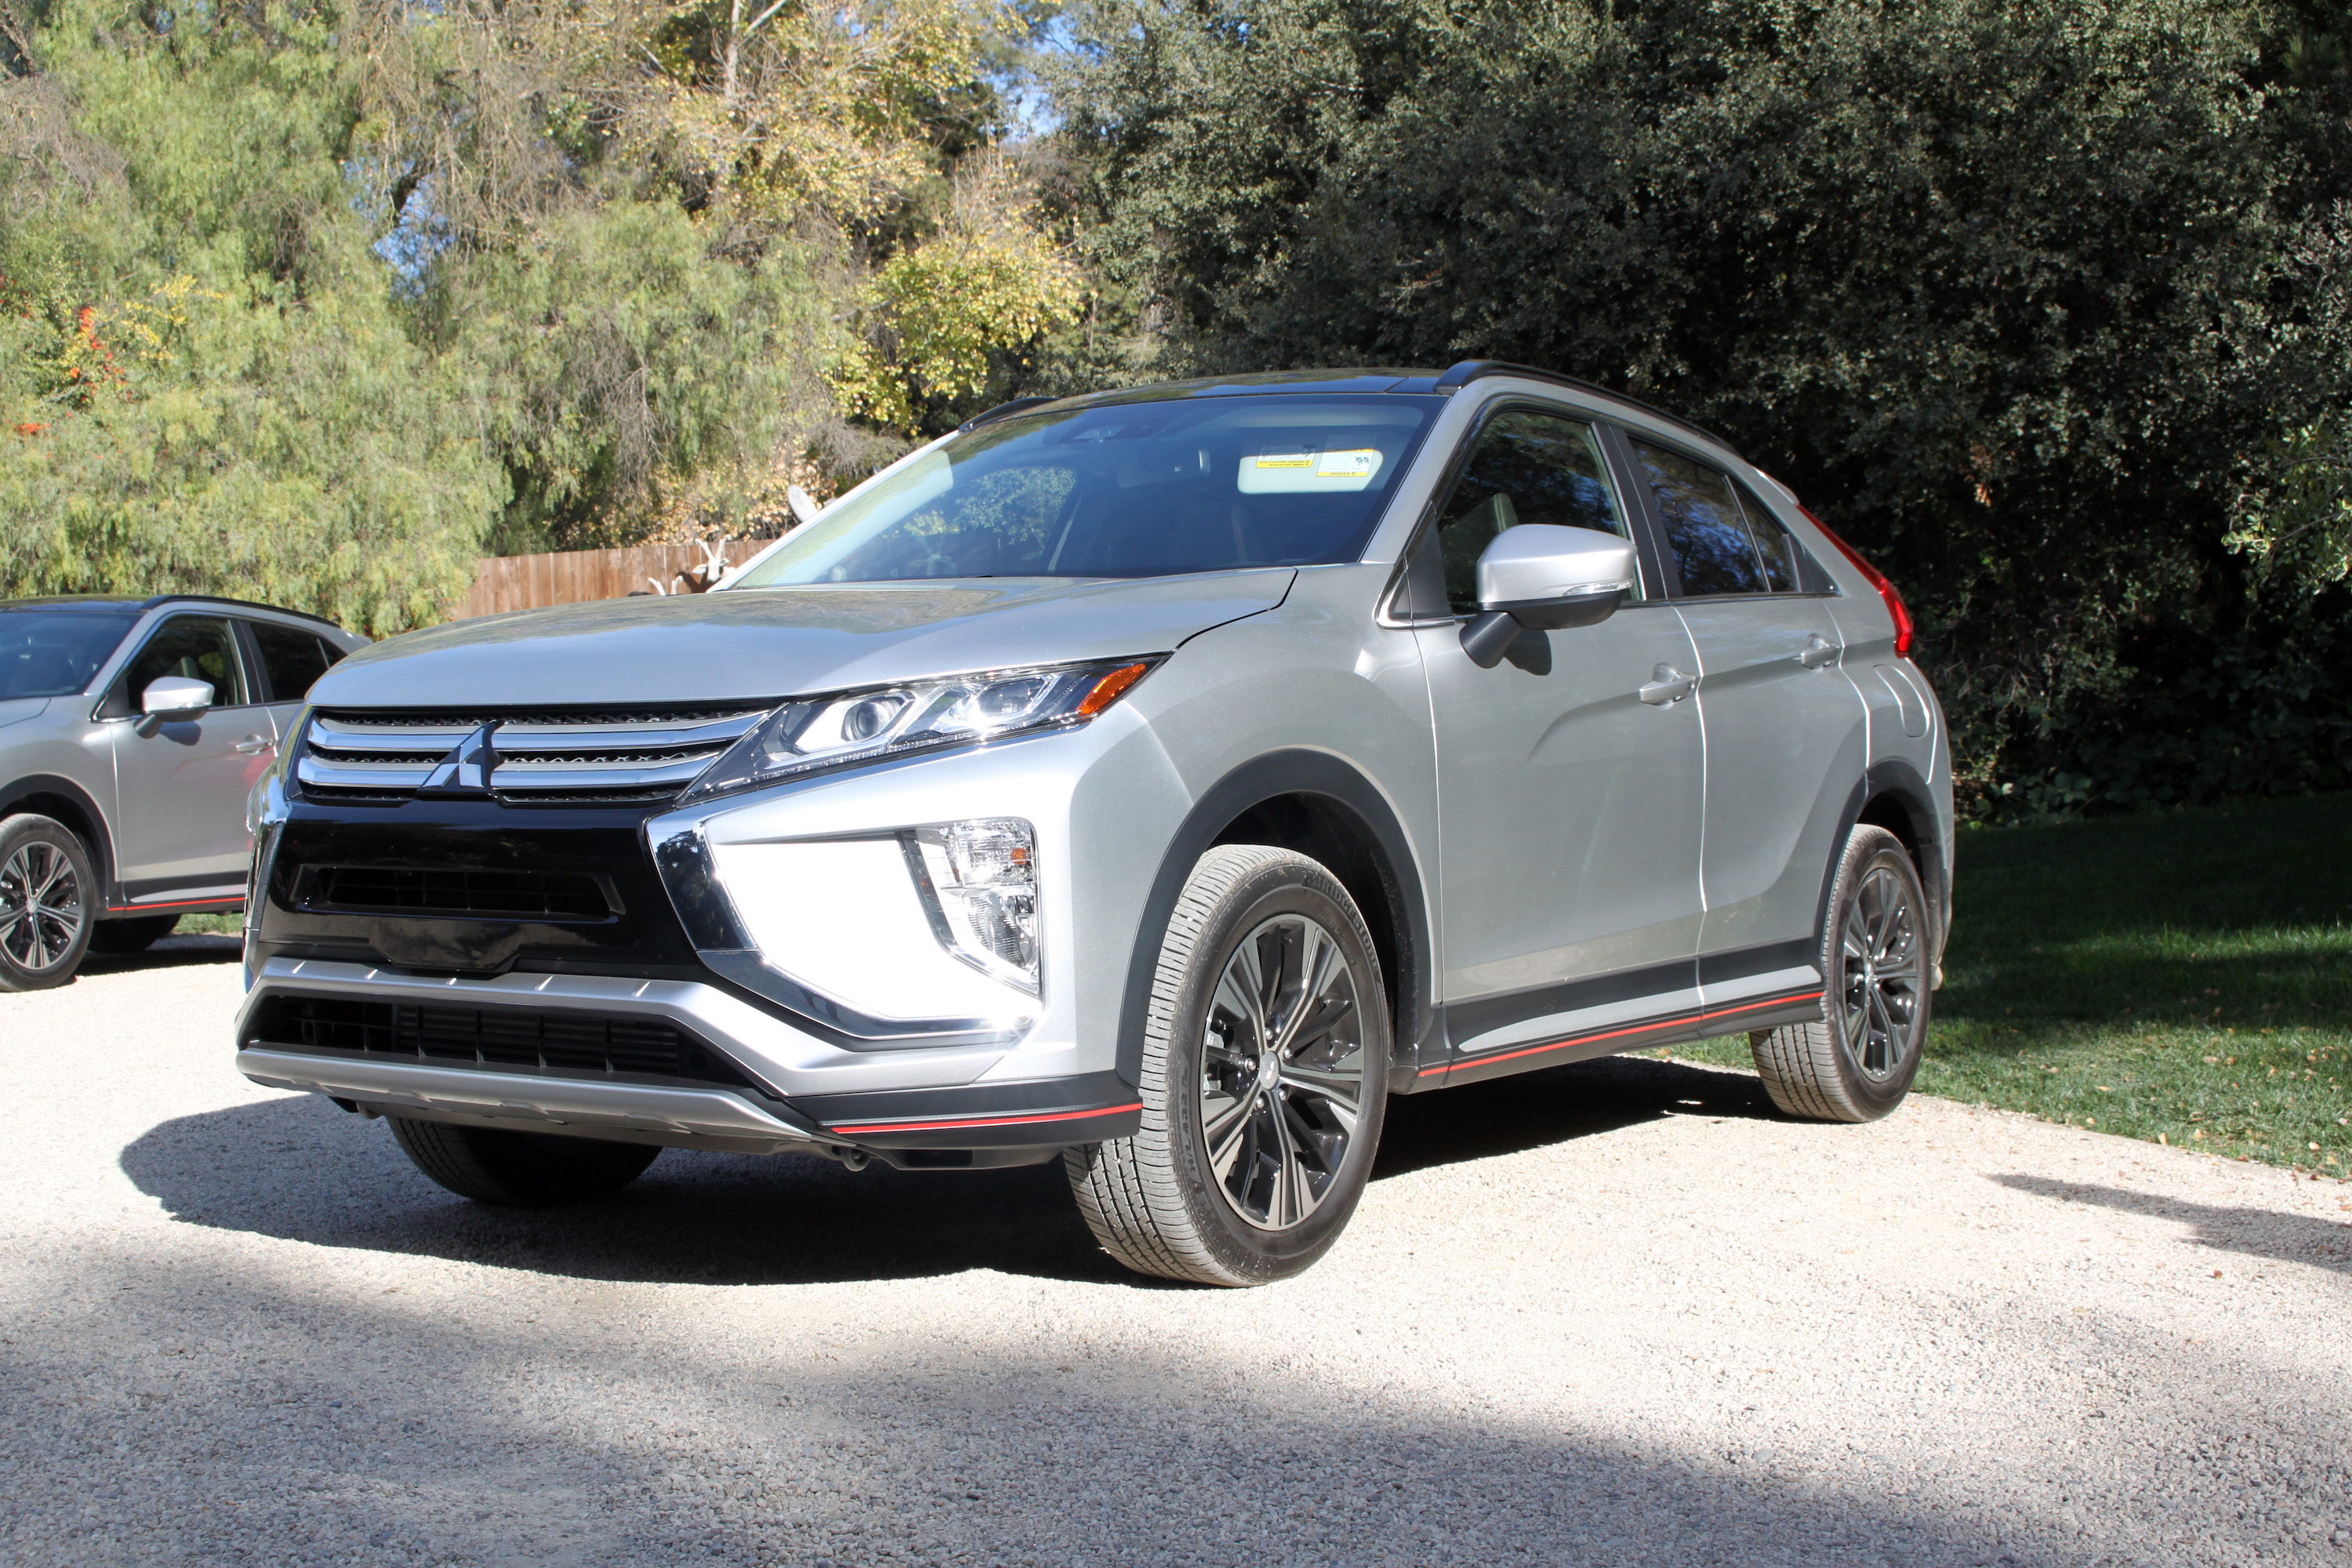 2018 mitsubishi eclipse cross first drive and review news. Black Bedroom Furniture Sets. Home Design Ideas